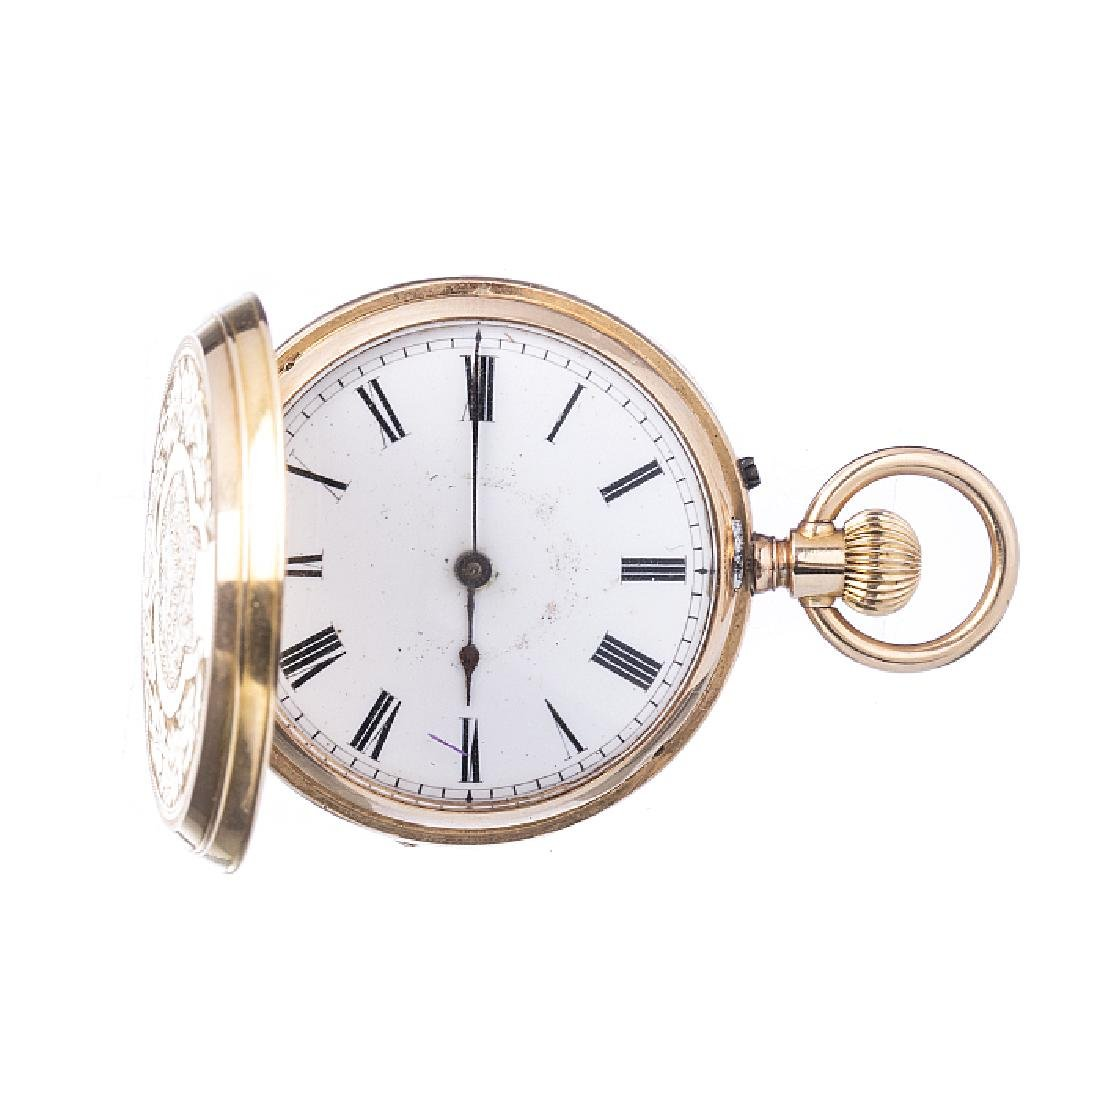 VACHERON CONSTANTIN - Pocket watch for ladies, in gold